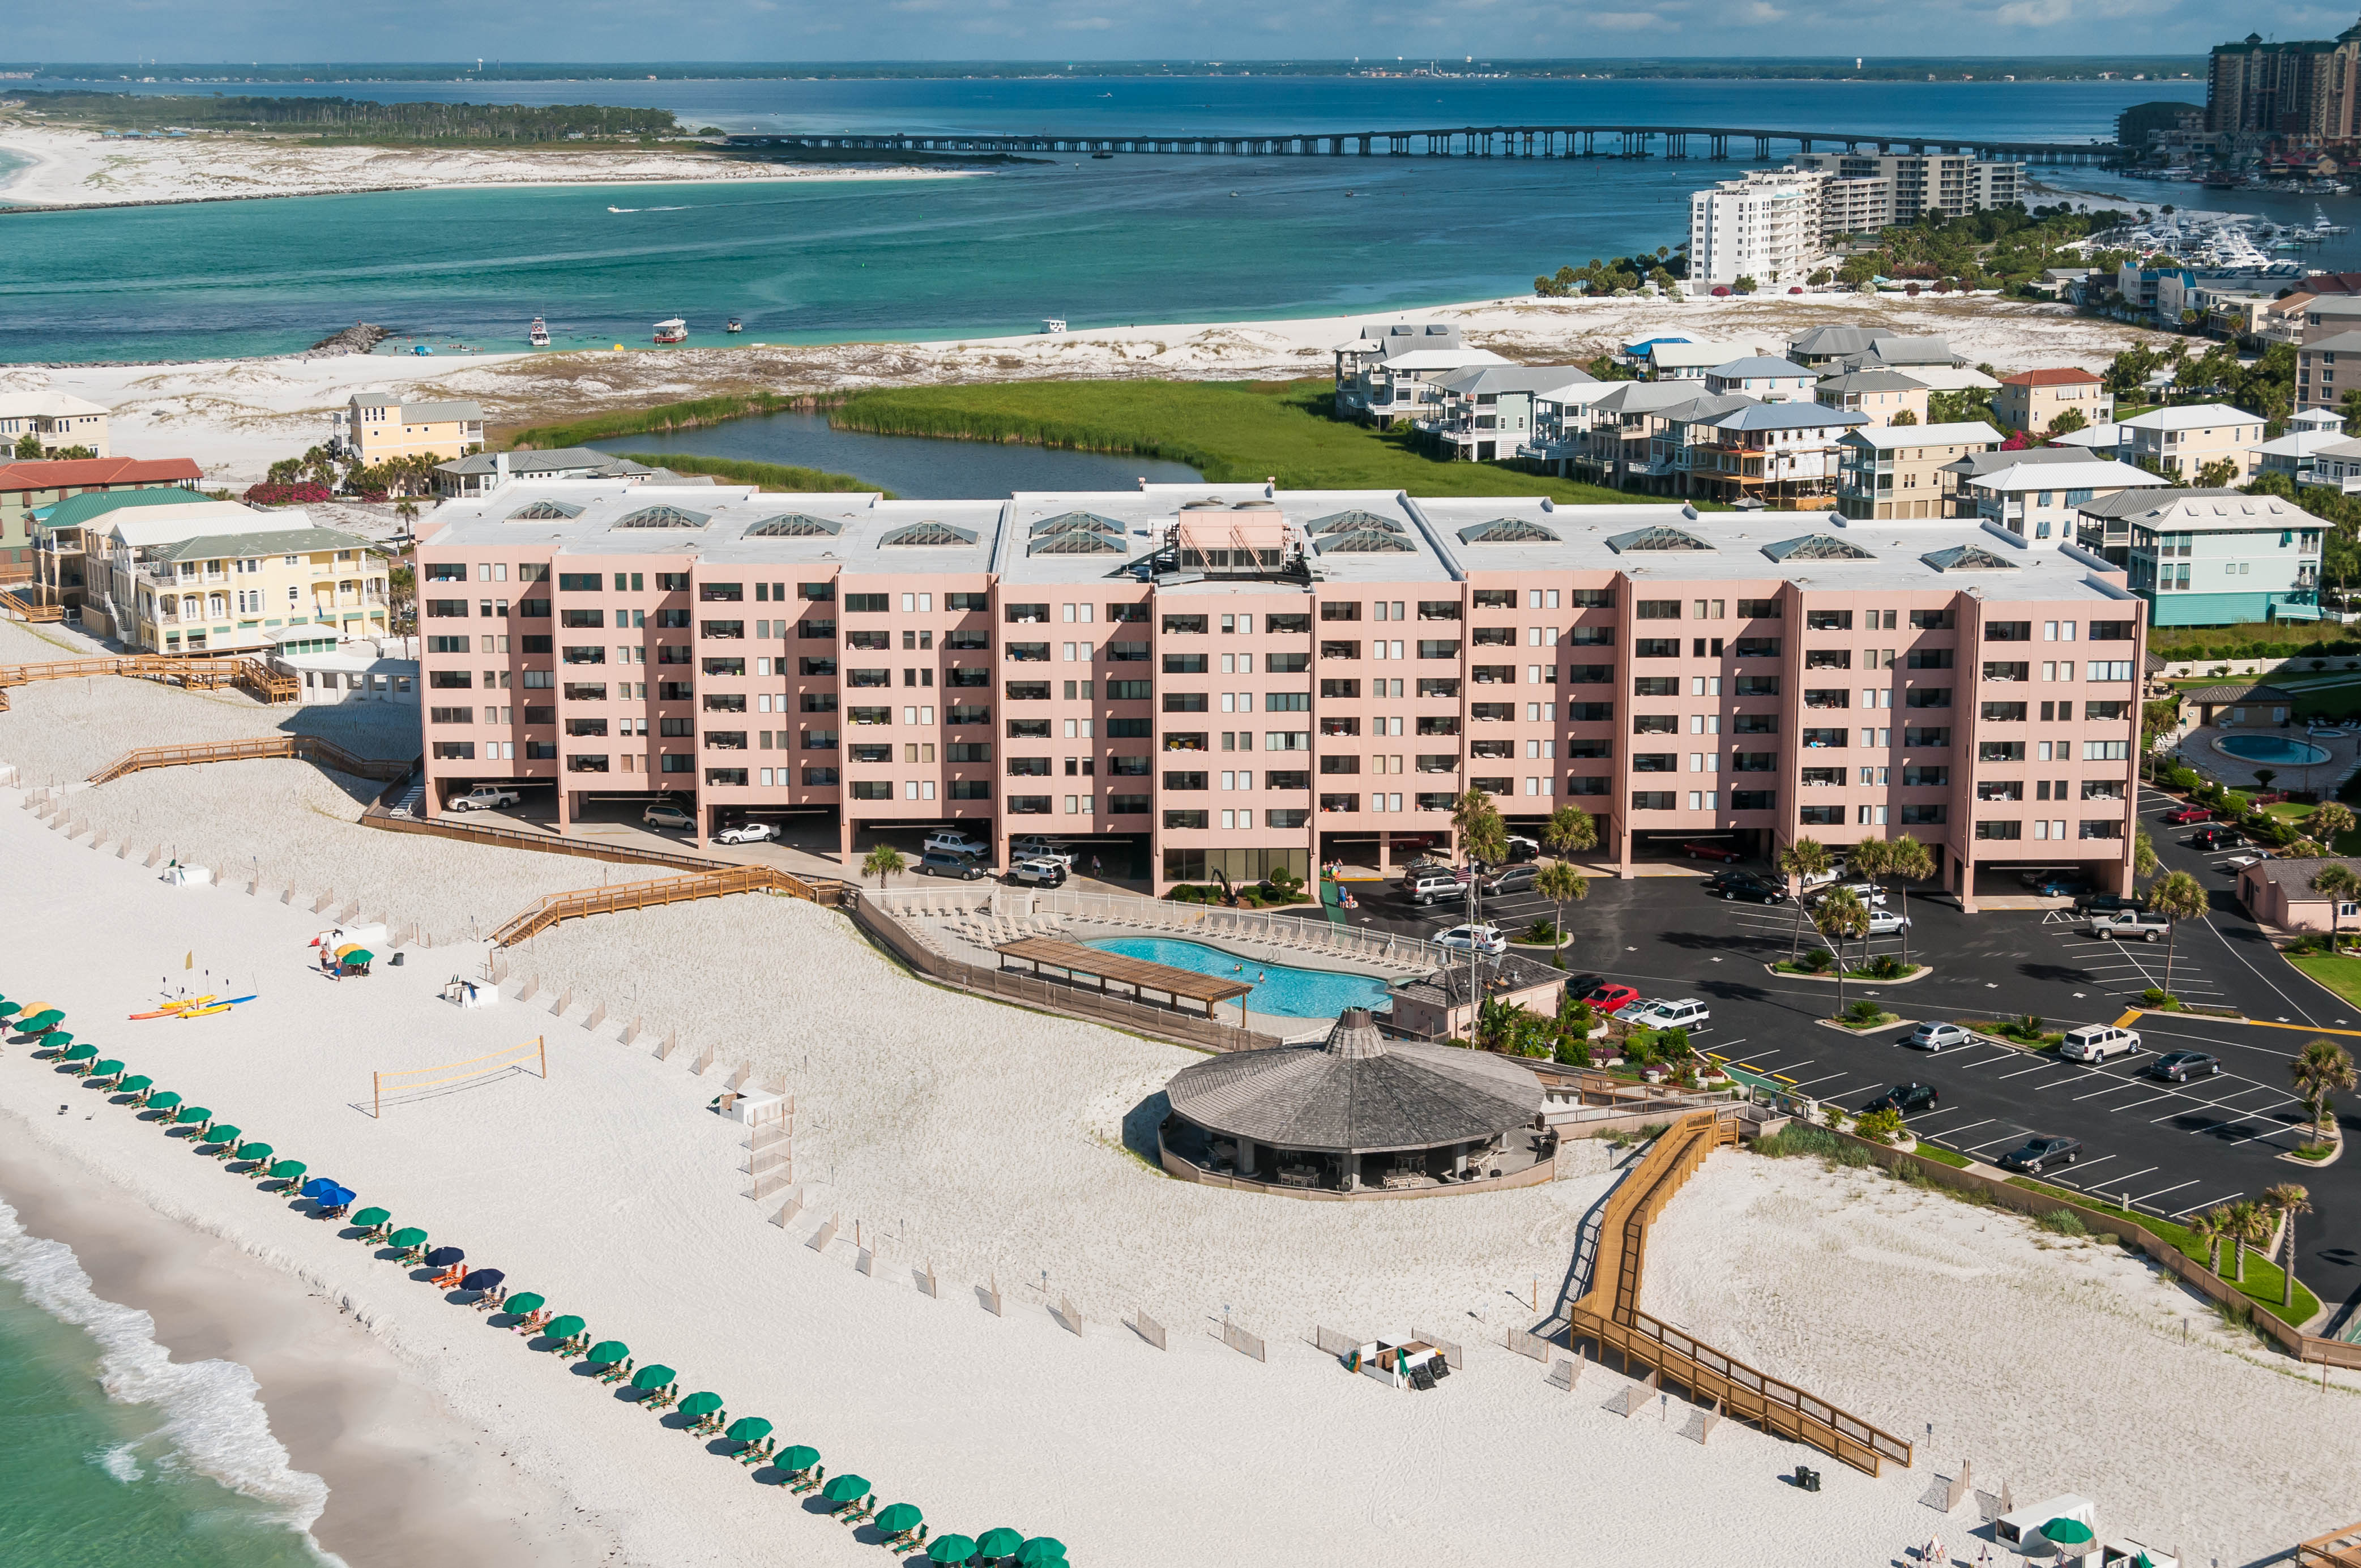 Enjoy a free night, stunning views, and fascinating marine life at Jetty East in Destin